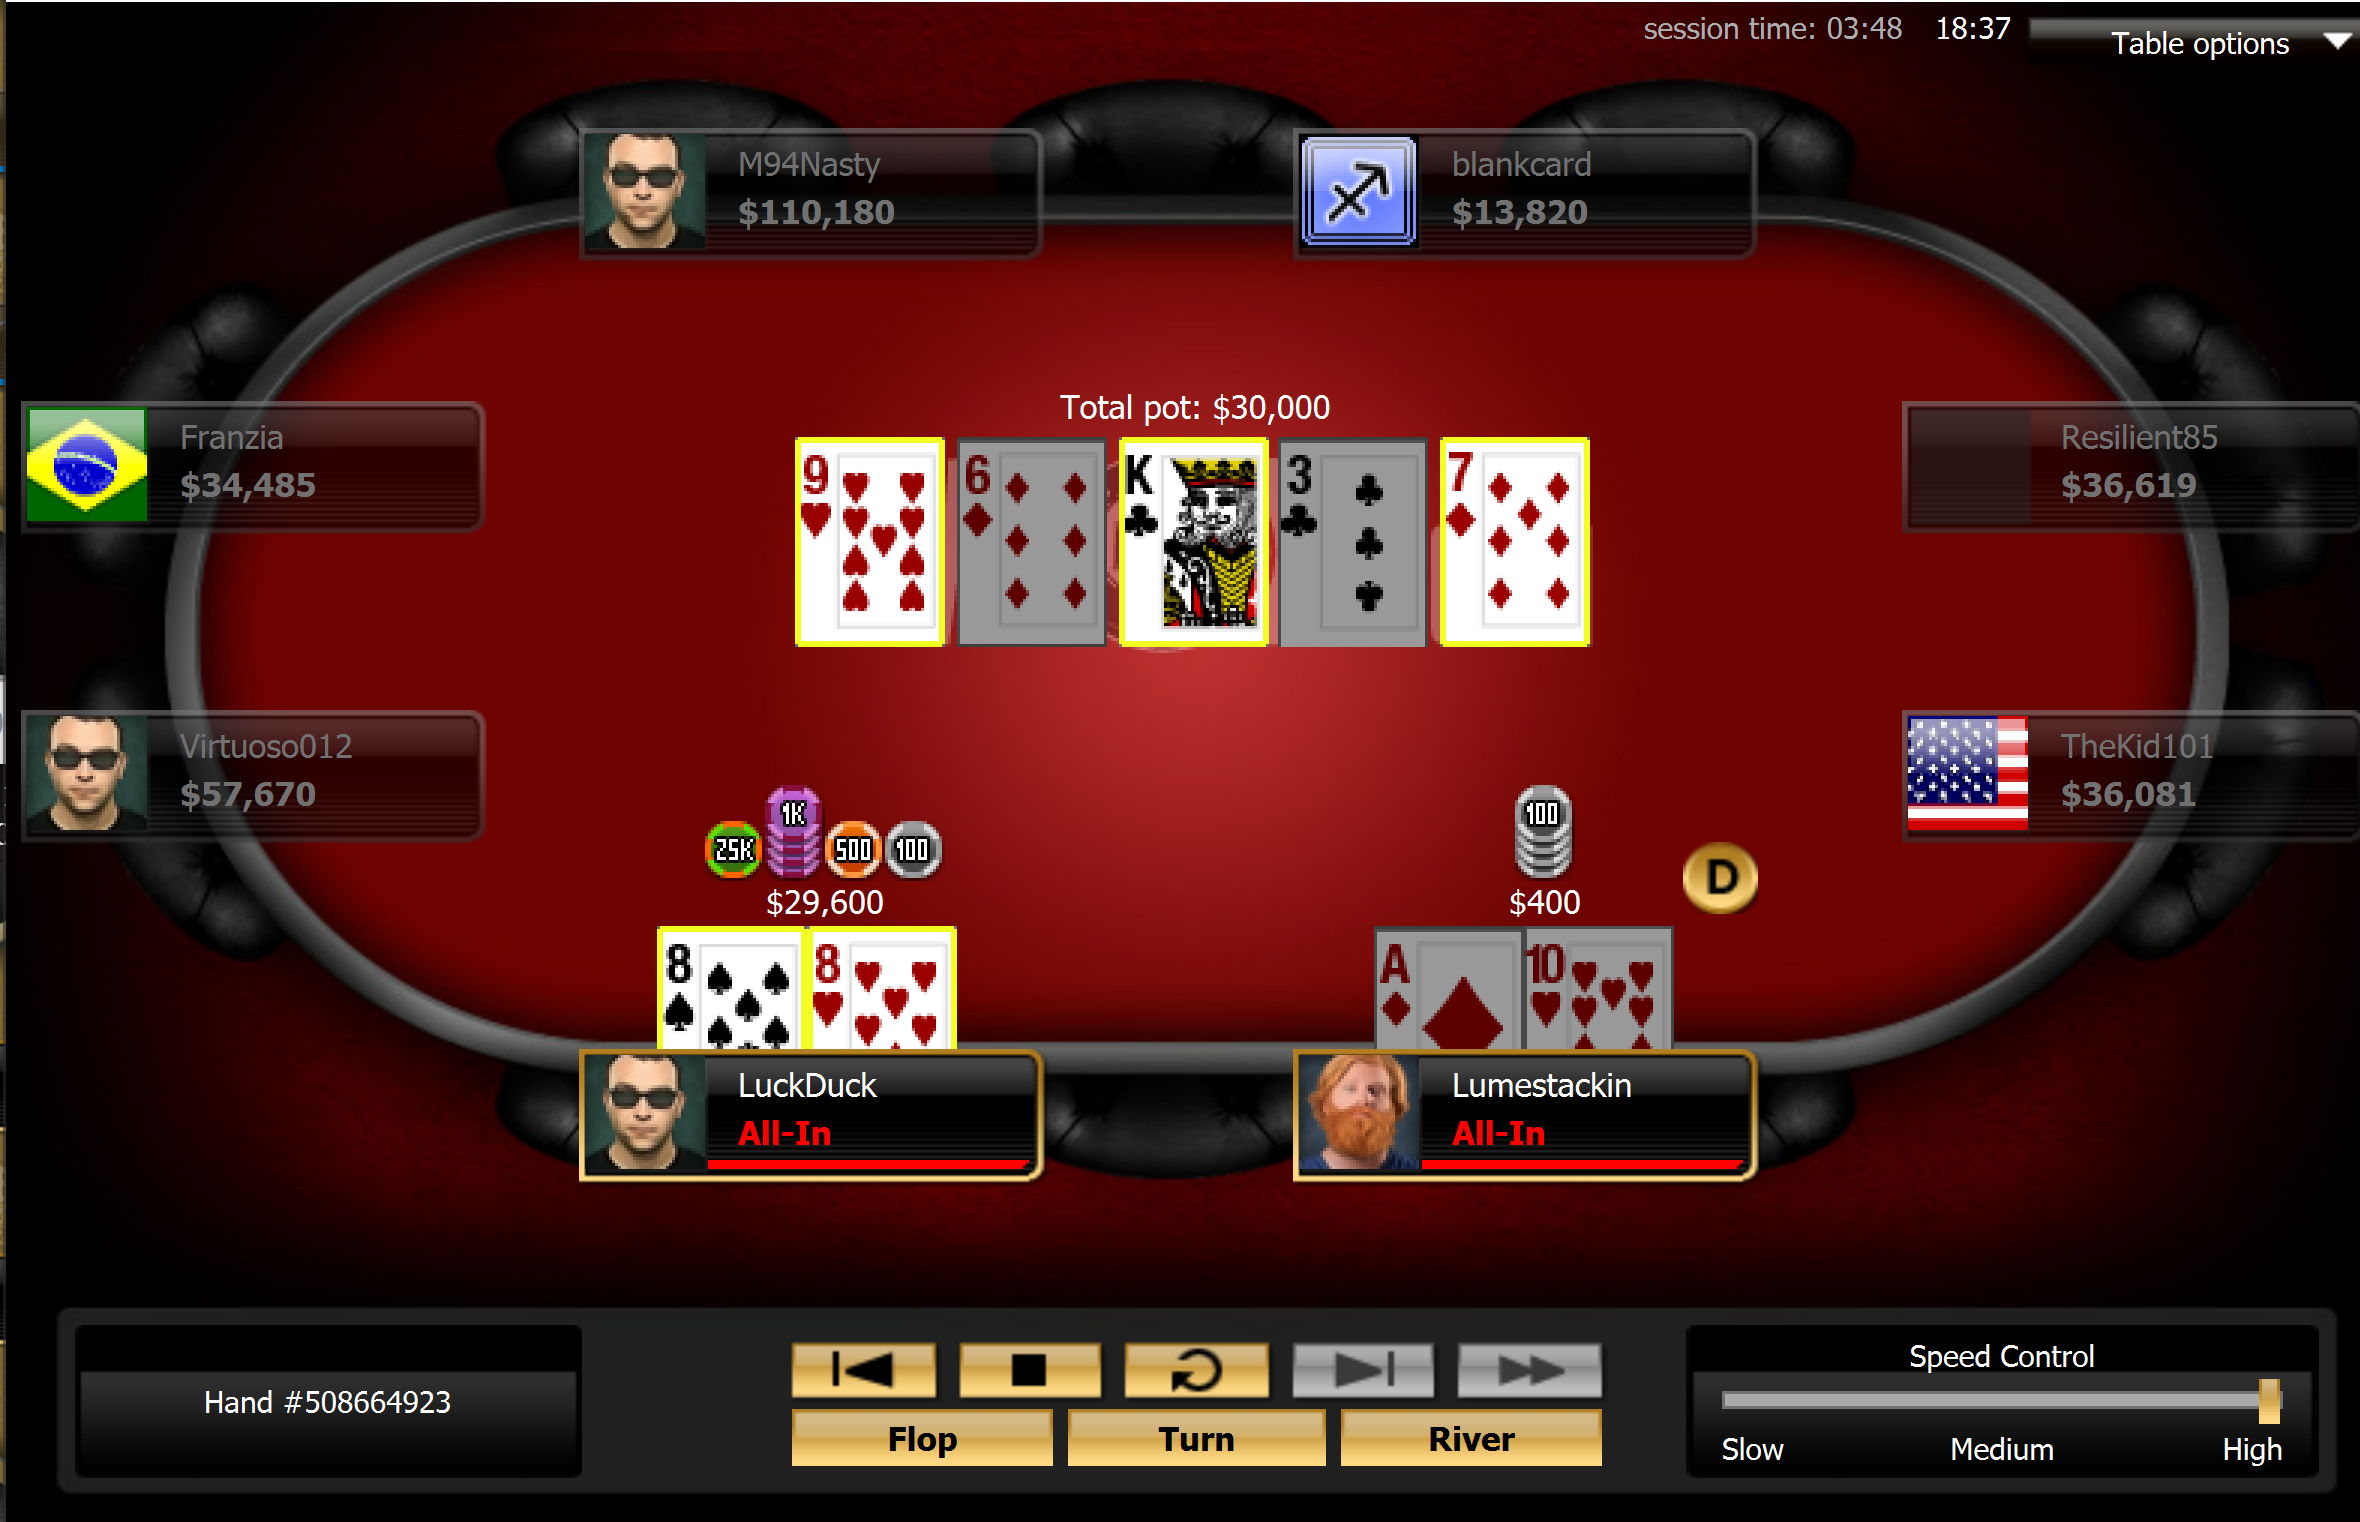 Hellmuth Loses Race to Lawhun Then Rebuys